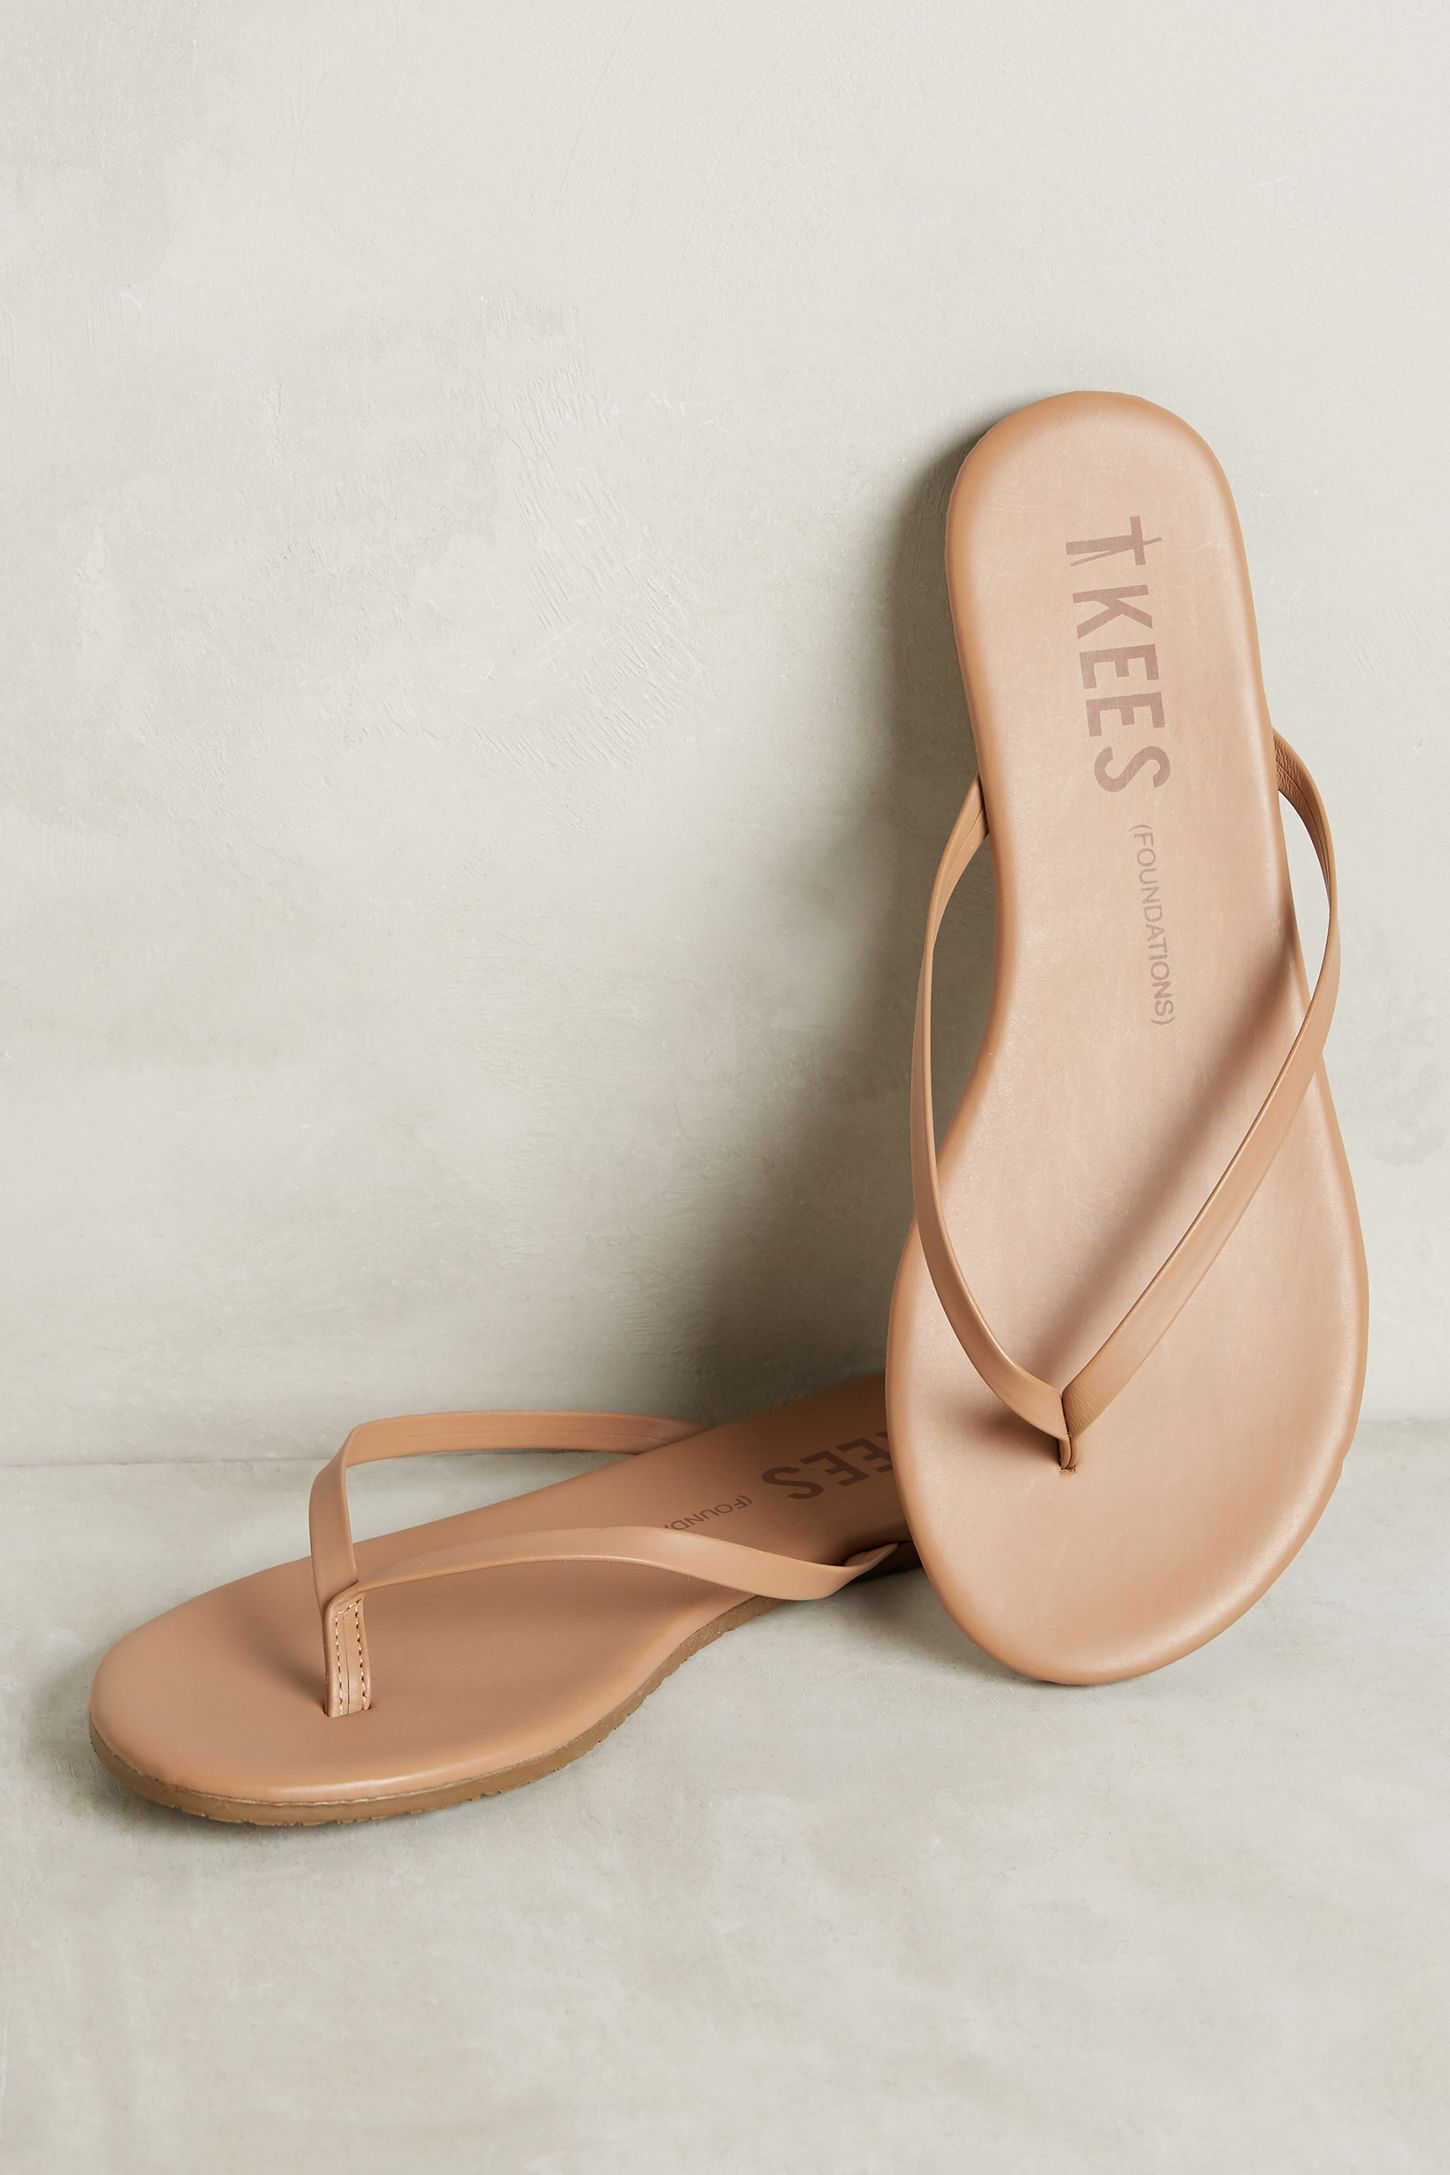 467c20e0bea4 Tkees Foundations Sandals